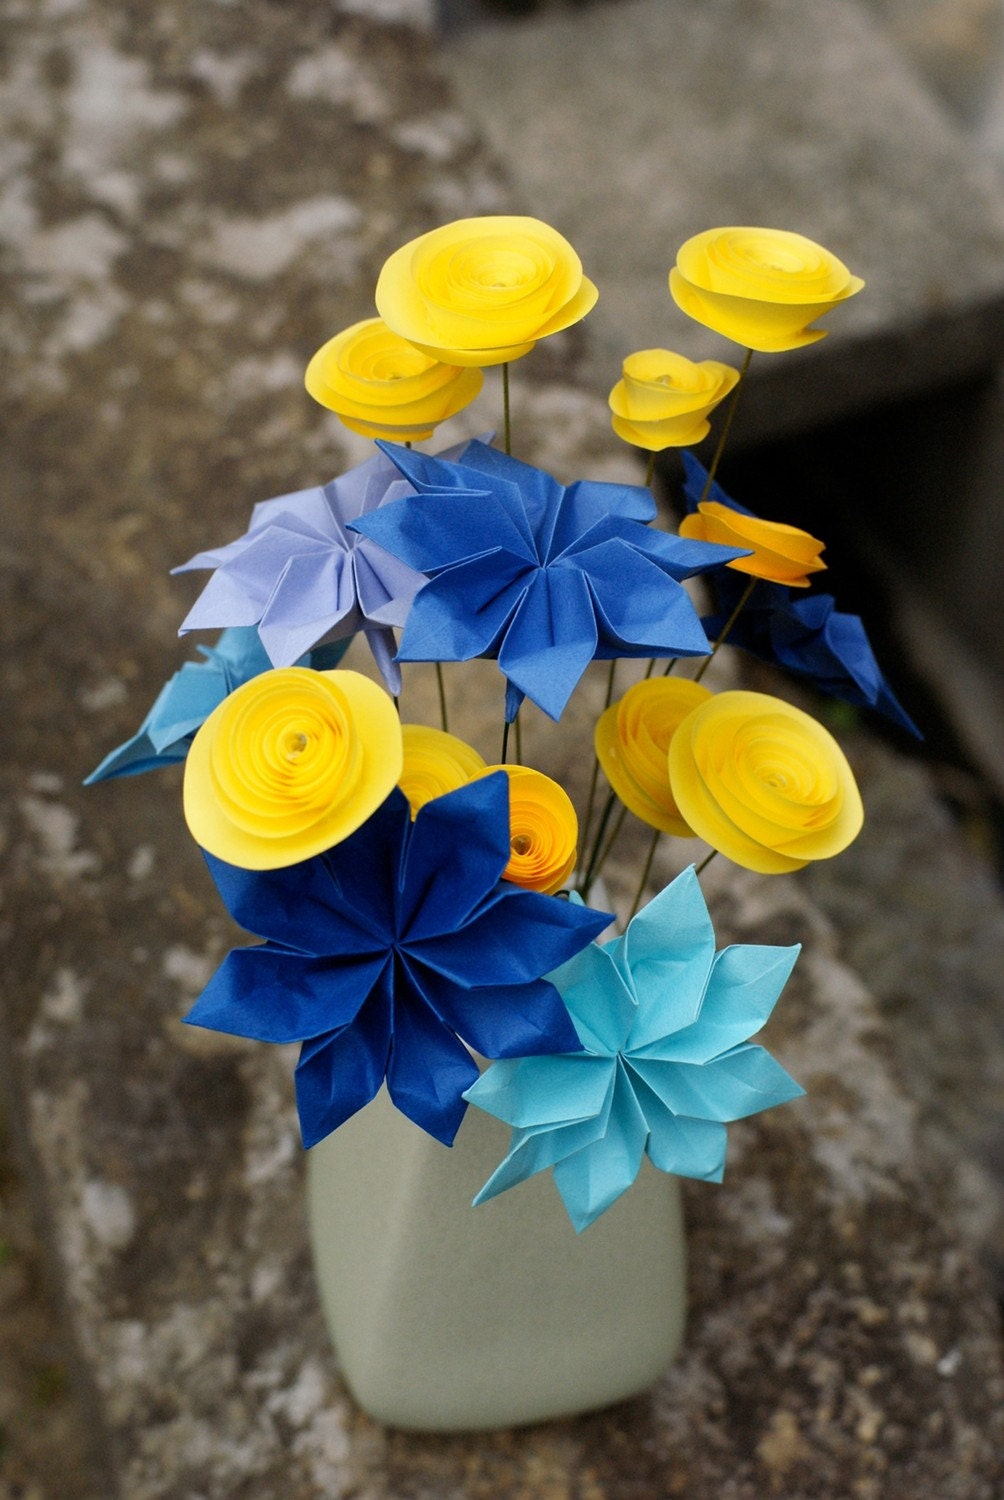 Everything Origami Origami Starry Night Flowers